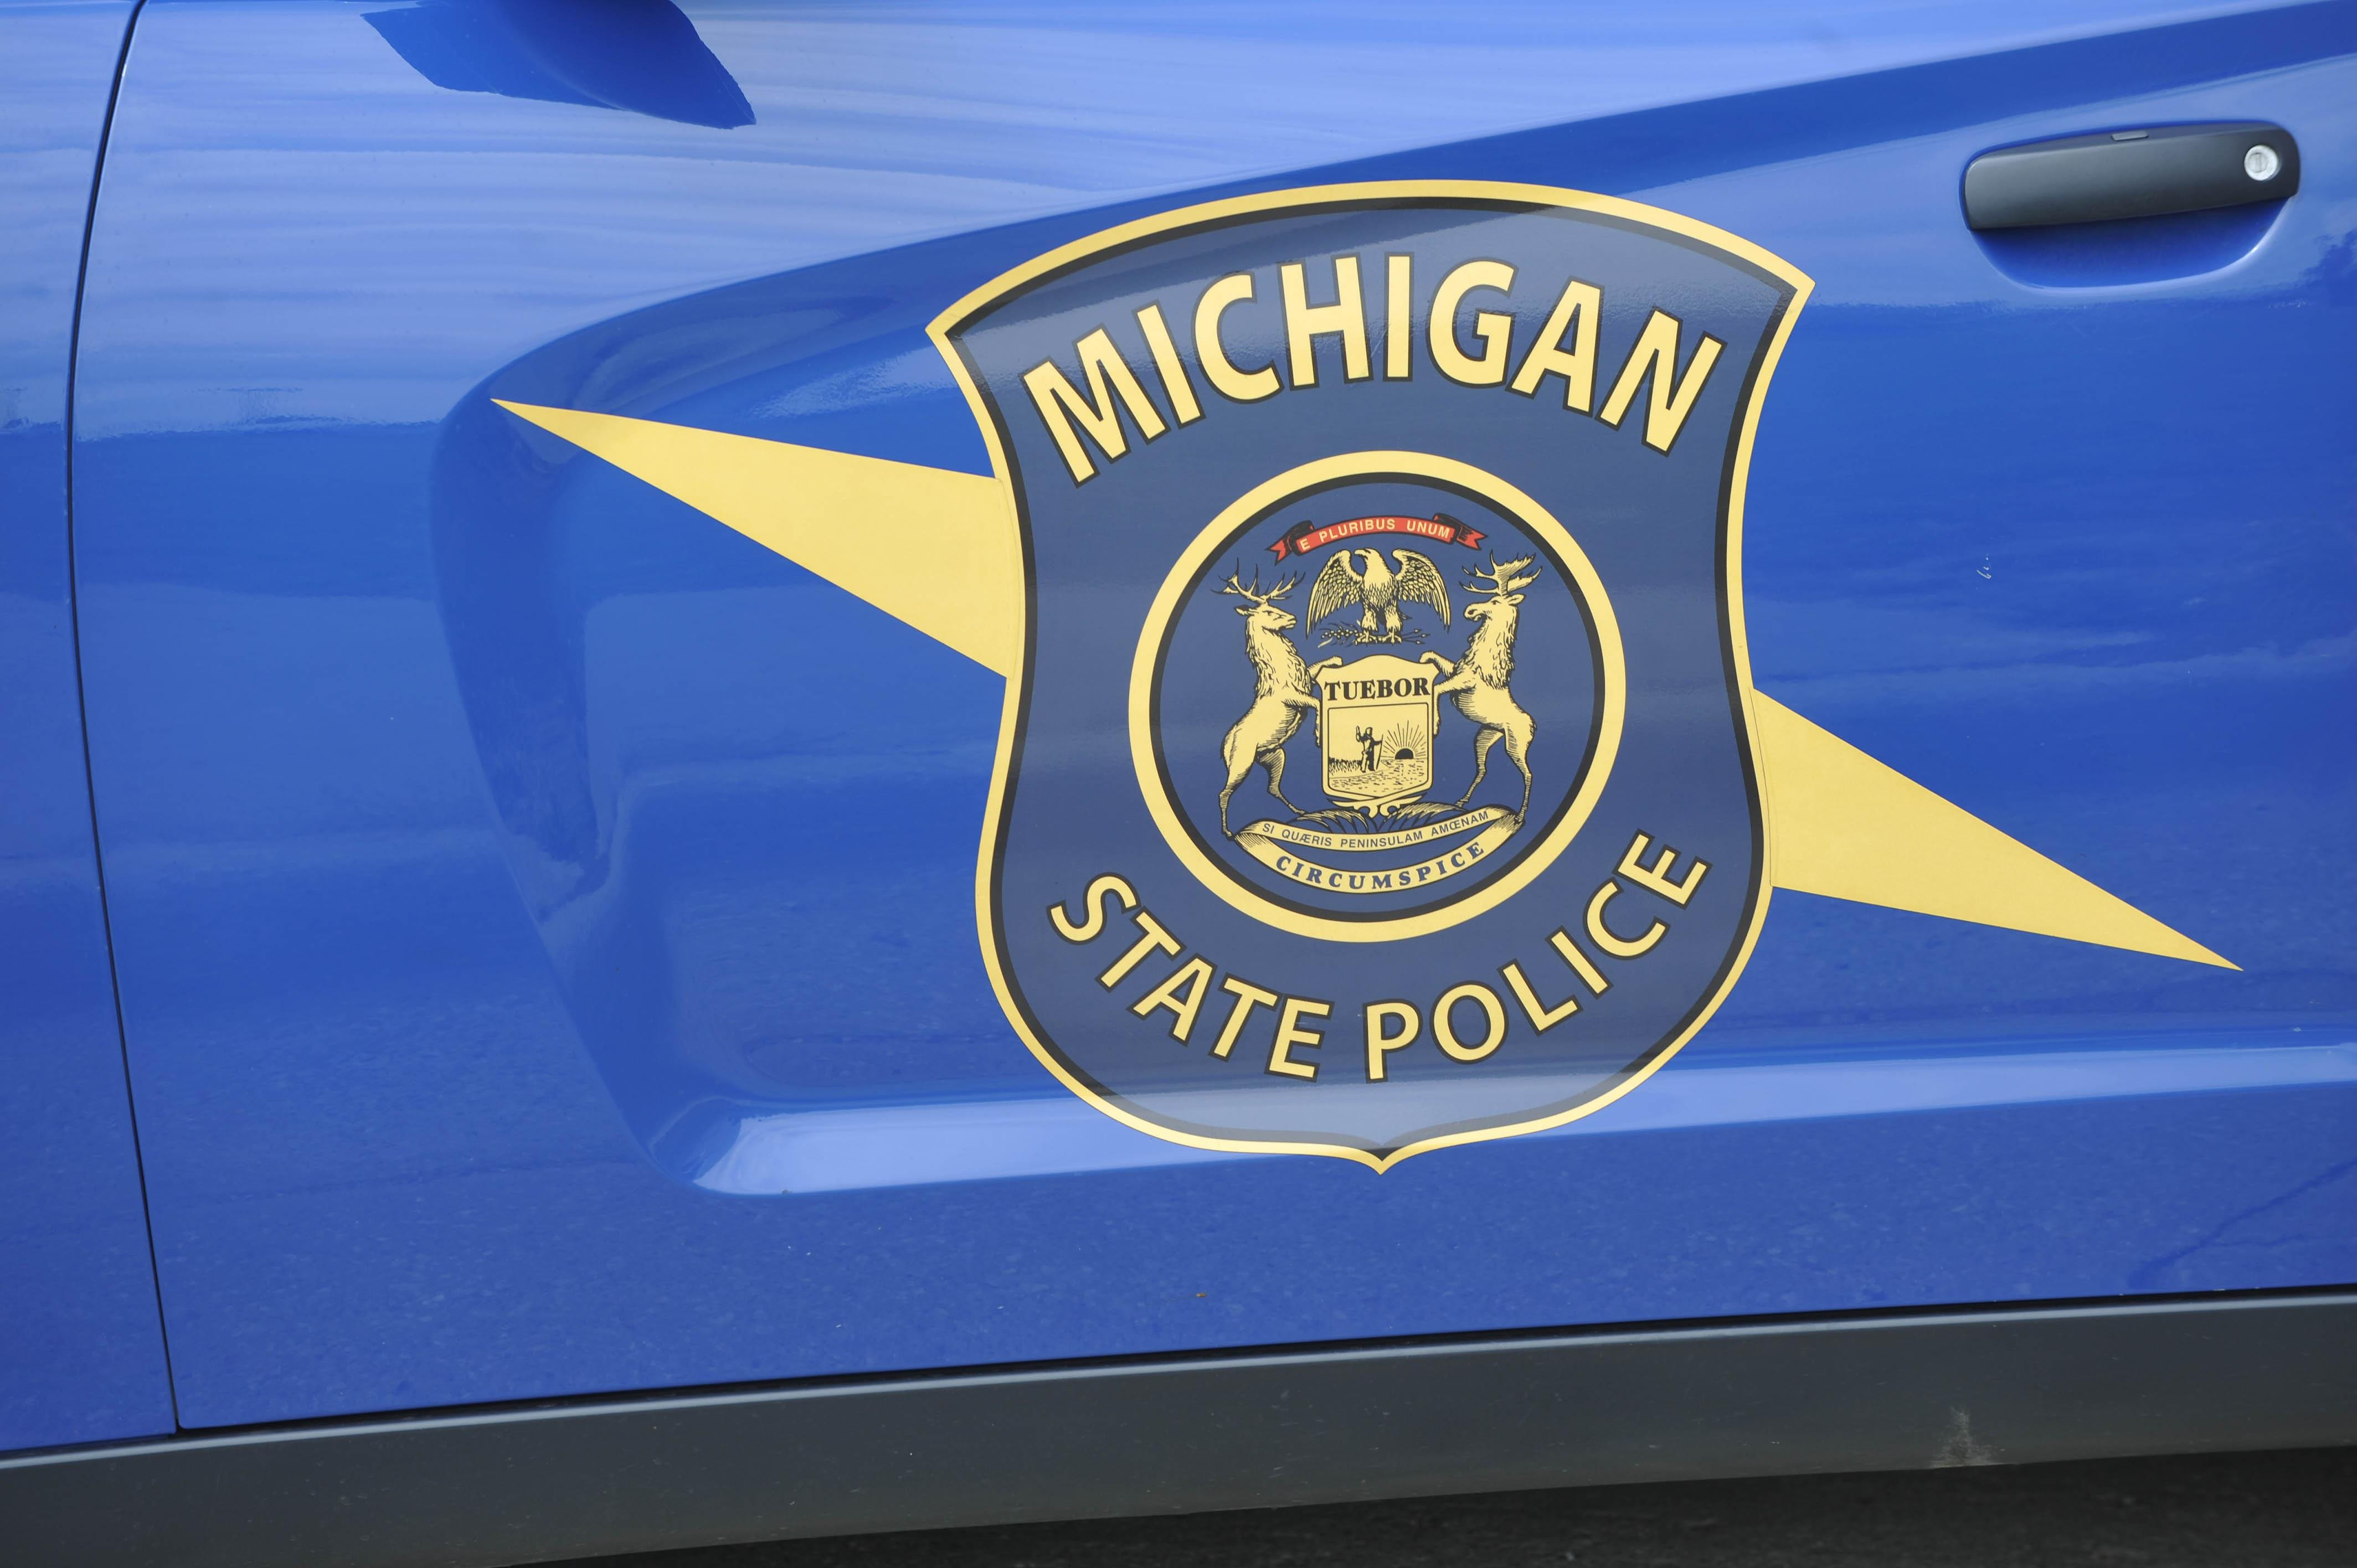 Michigan State Police investigate sexual assault at Camp Dearborn